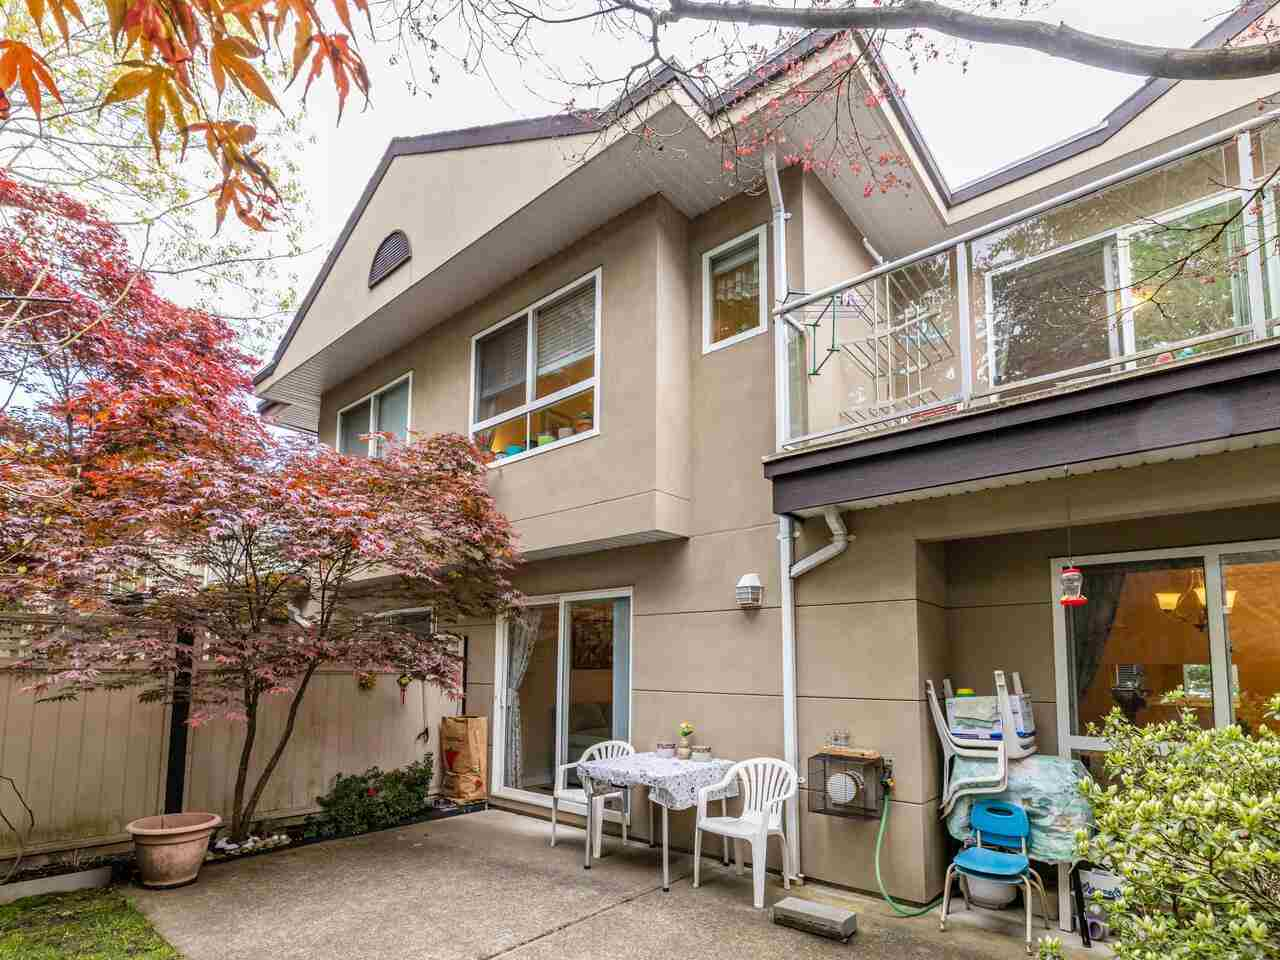 11 15875 84 AVE AVENUE - Fleetwood Tynehead Townhouse for sale, 3 Bedrooms (R2574652) - #18